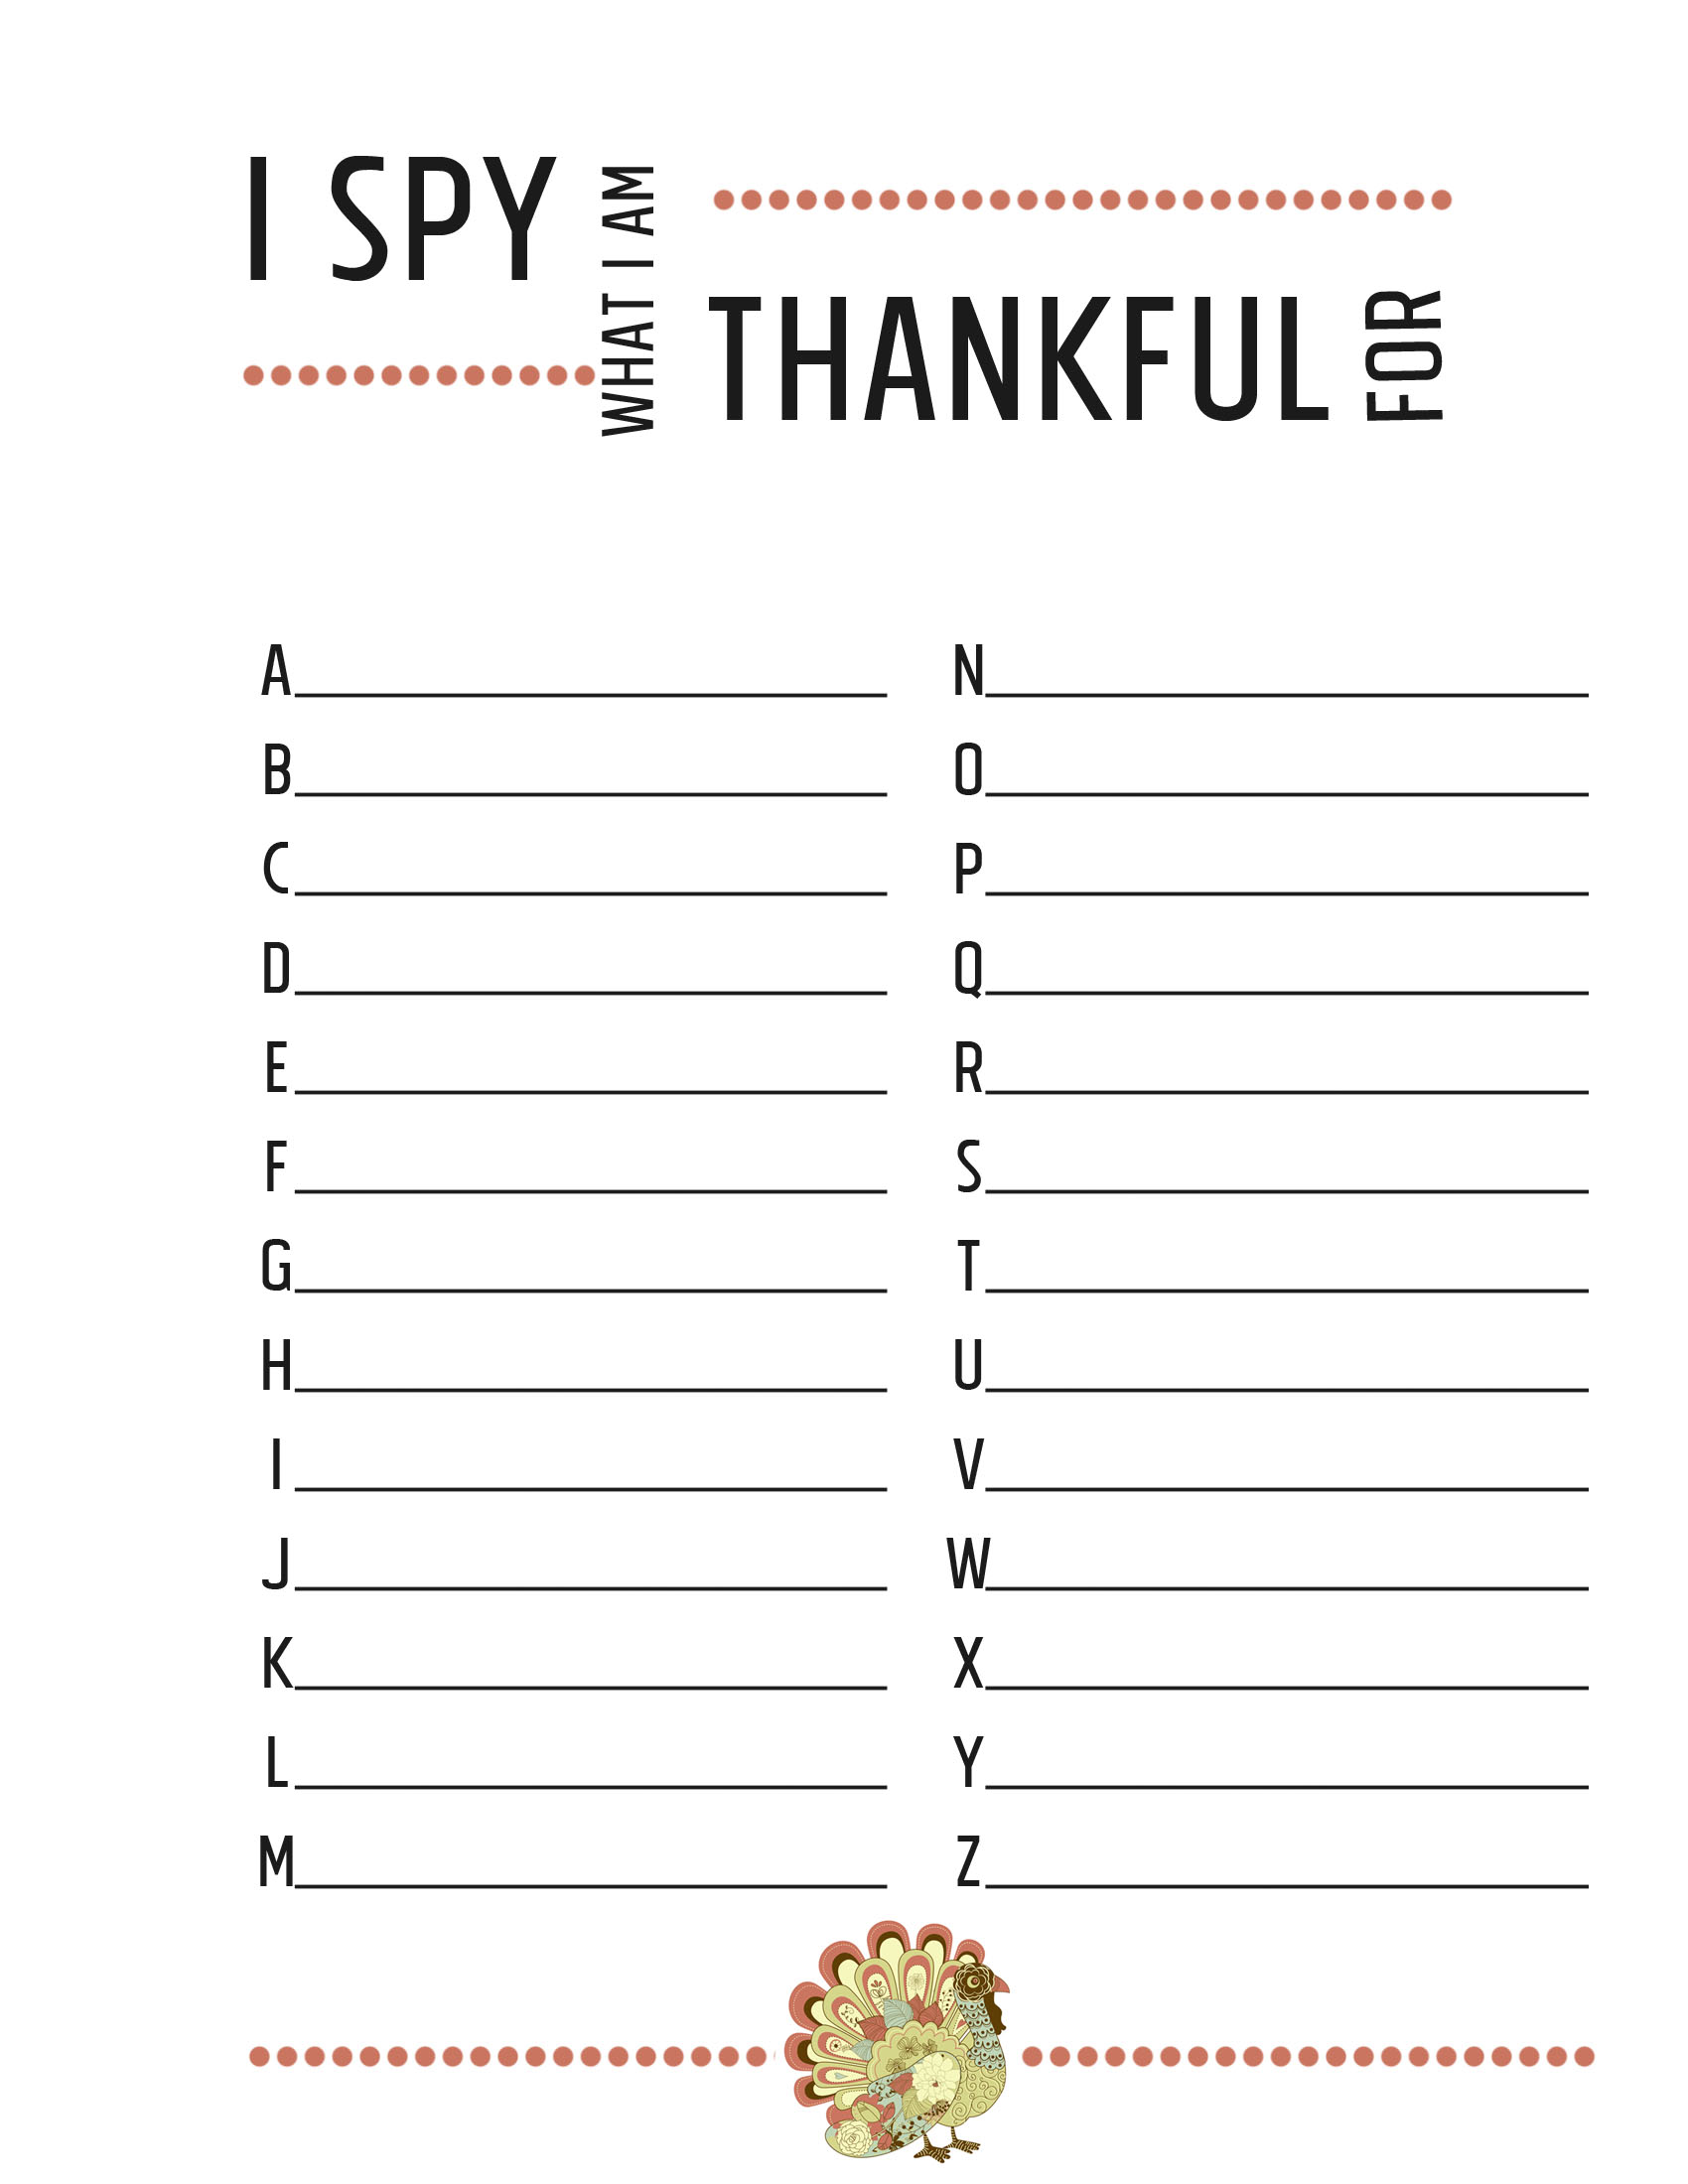 Printables Thanksgiving Worksheets thanksgiving worksheets free printables jessicalynette com worksheets